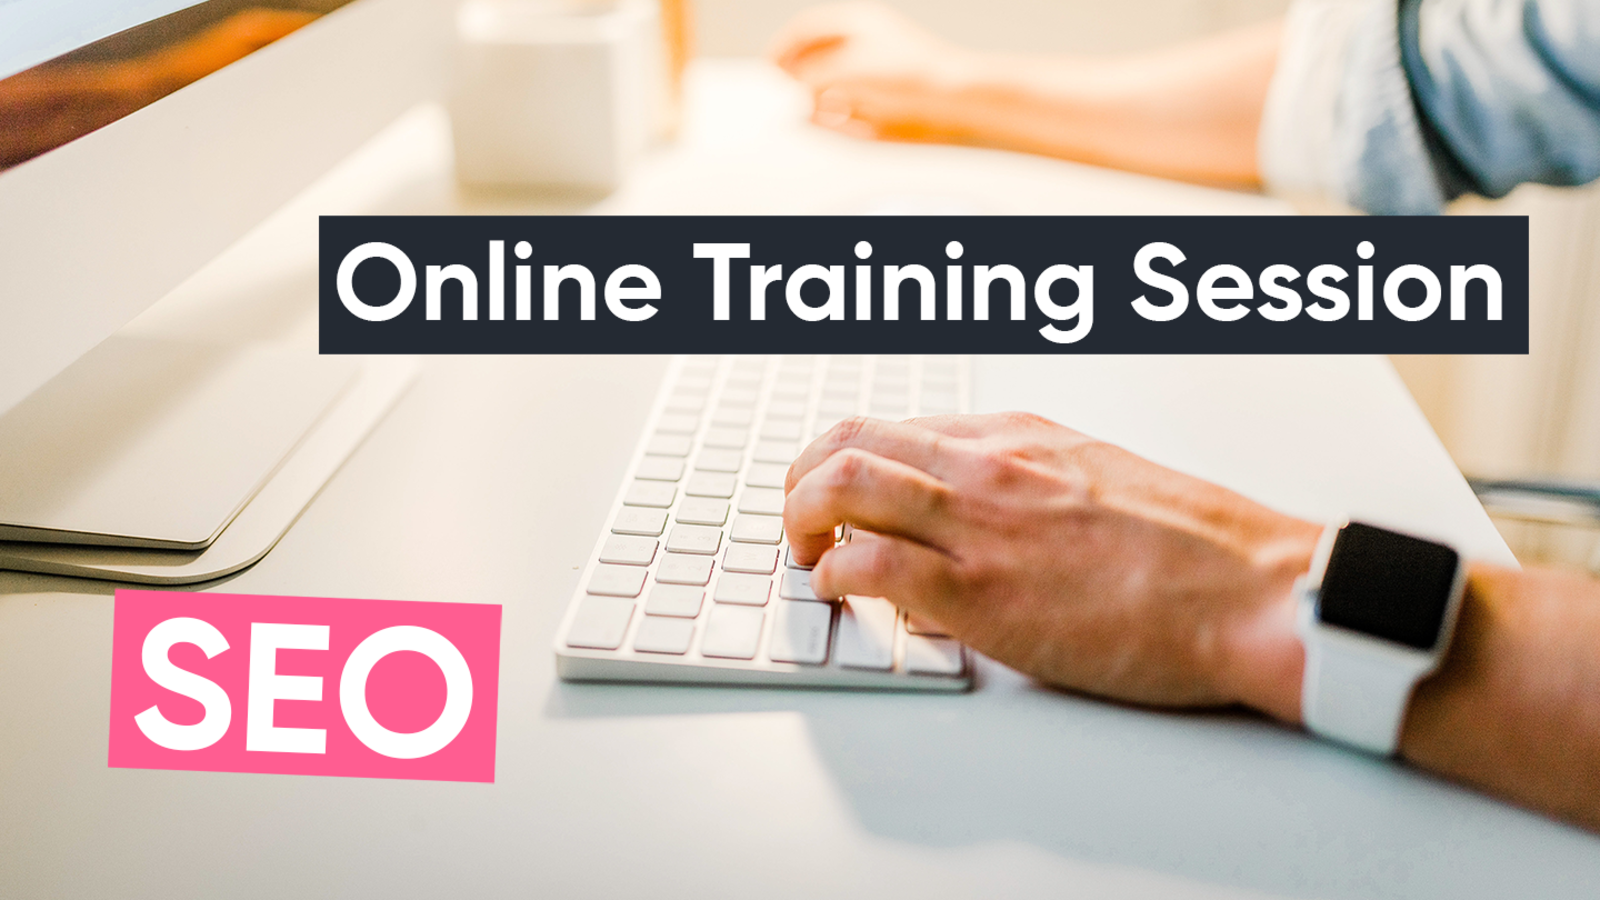 Online training session